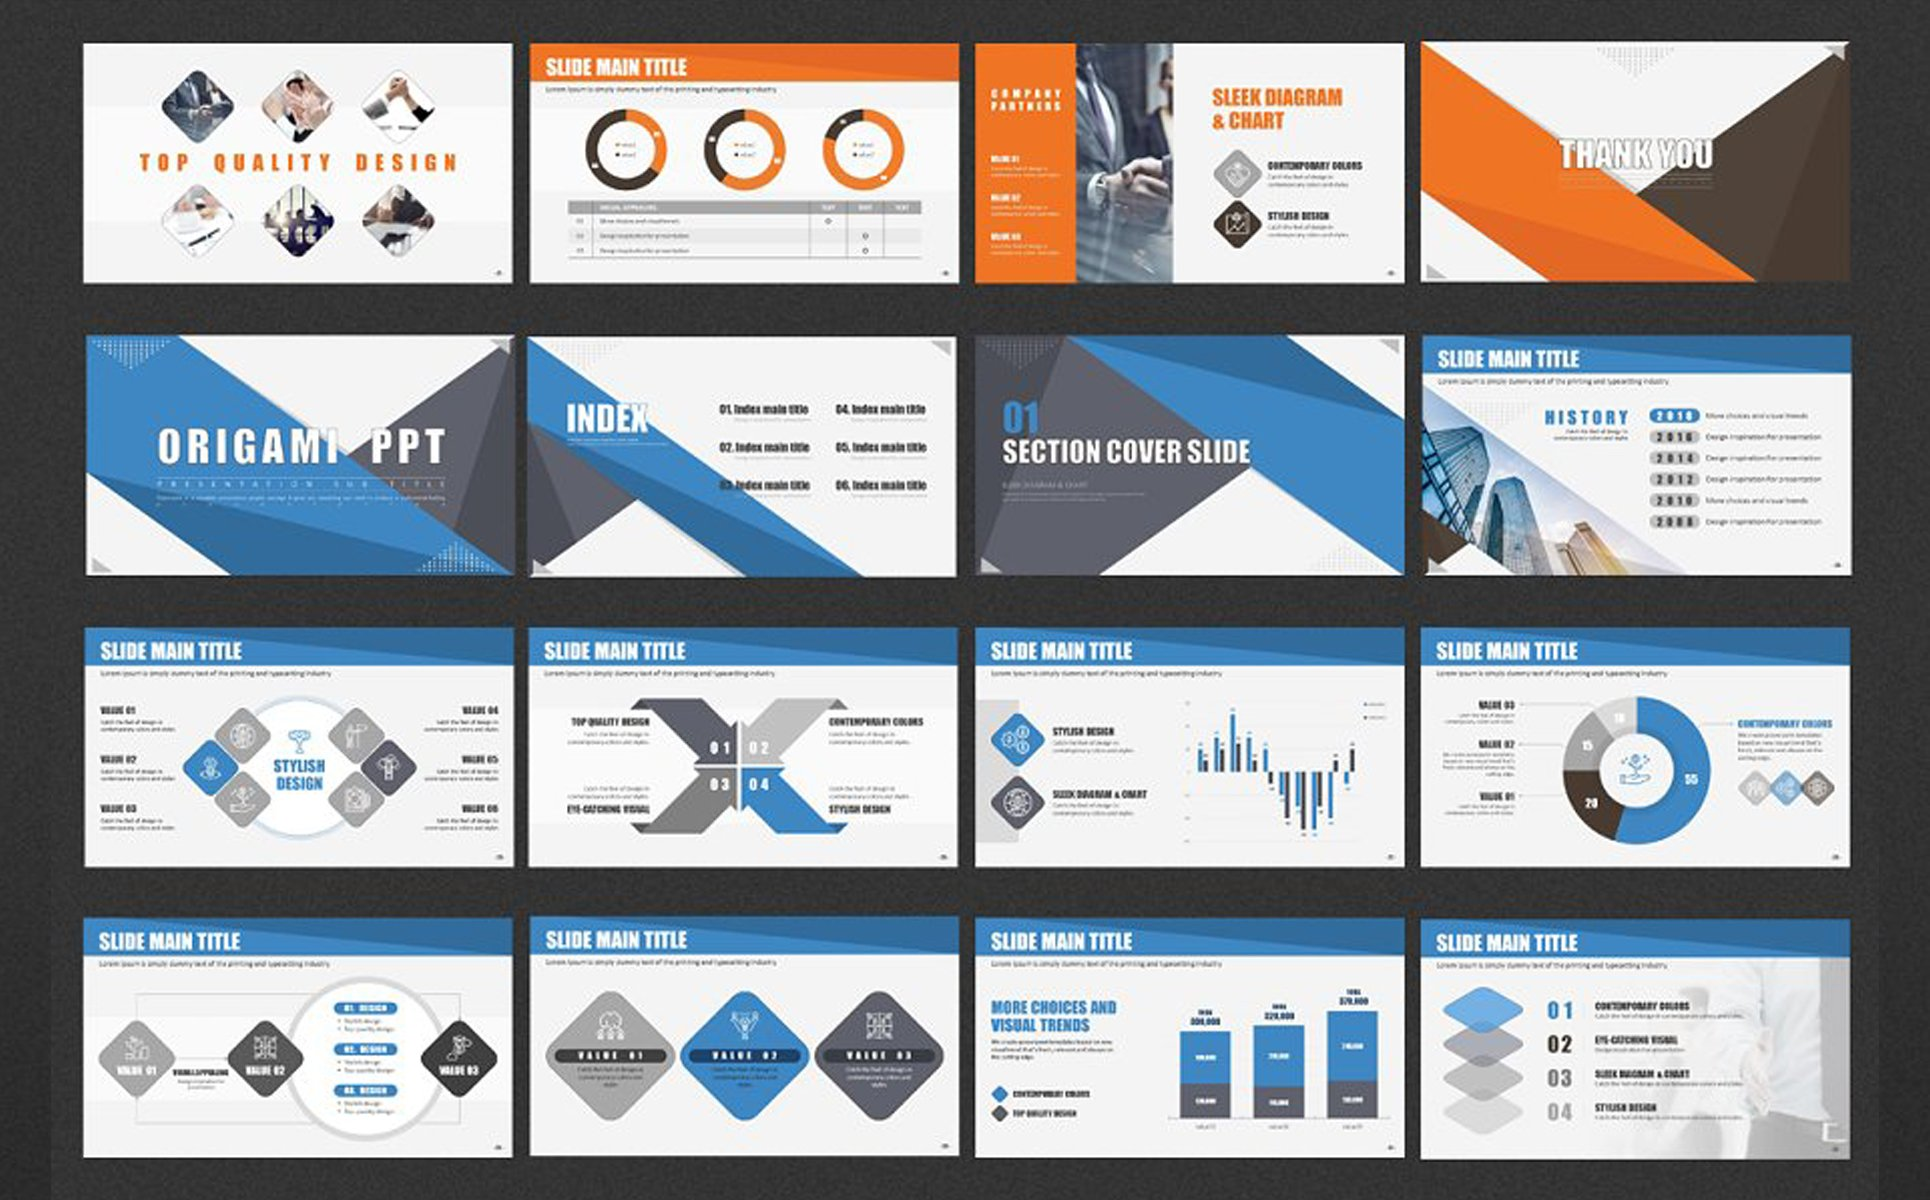 Origami PPT PowerPoint Template